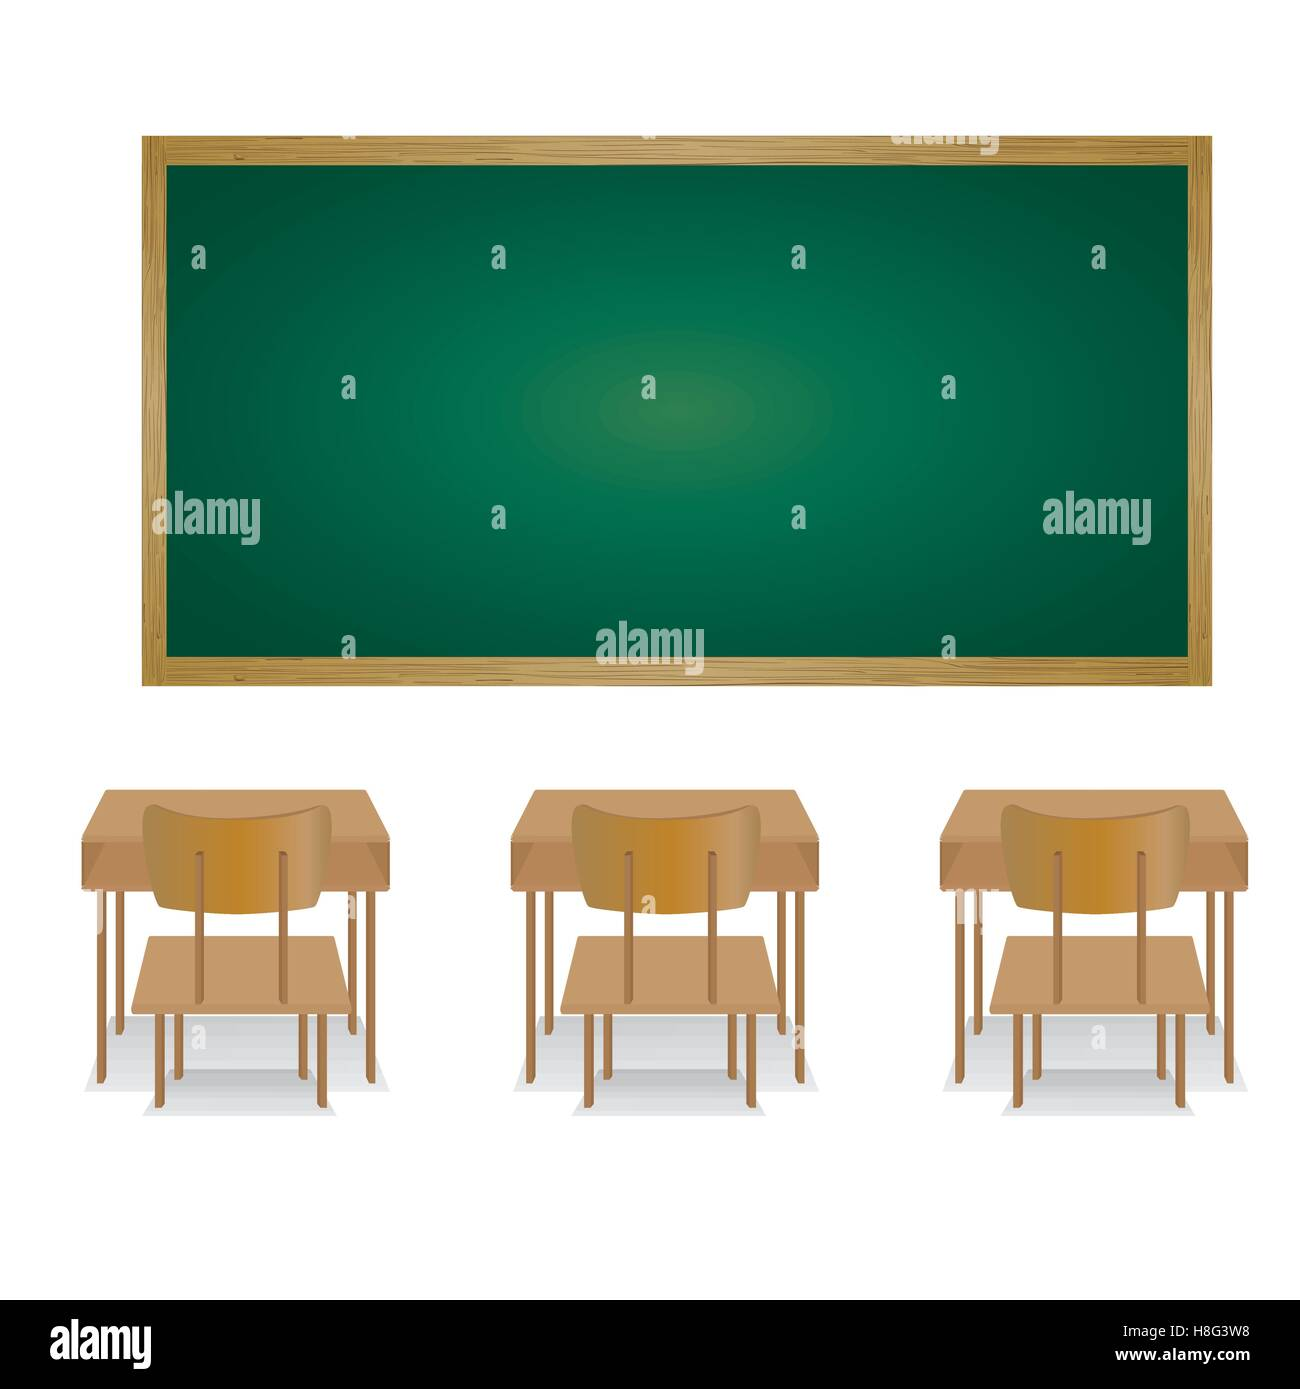 Classroom Table Chair Welcome Back To School Chalkboard Wall Indoor Elementary Drawing Picture